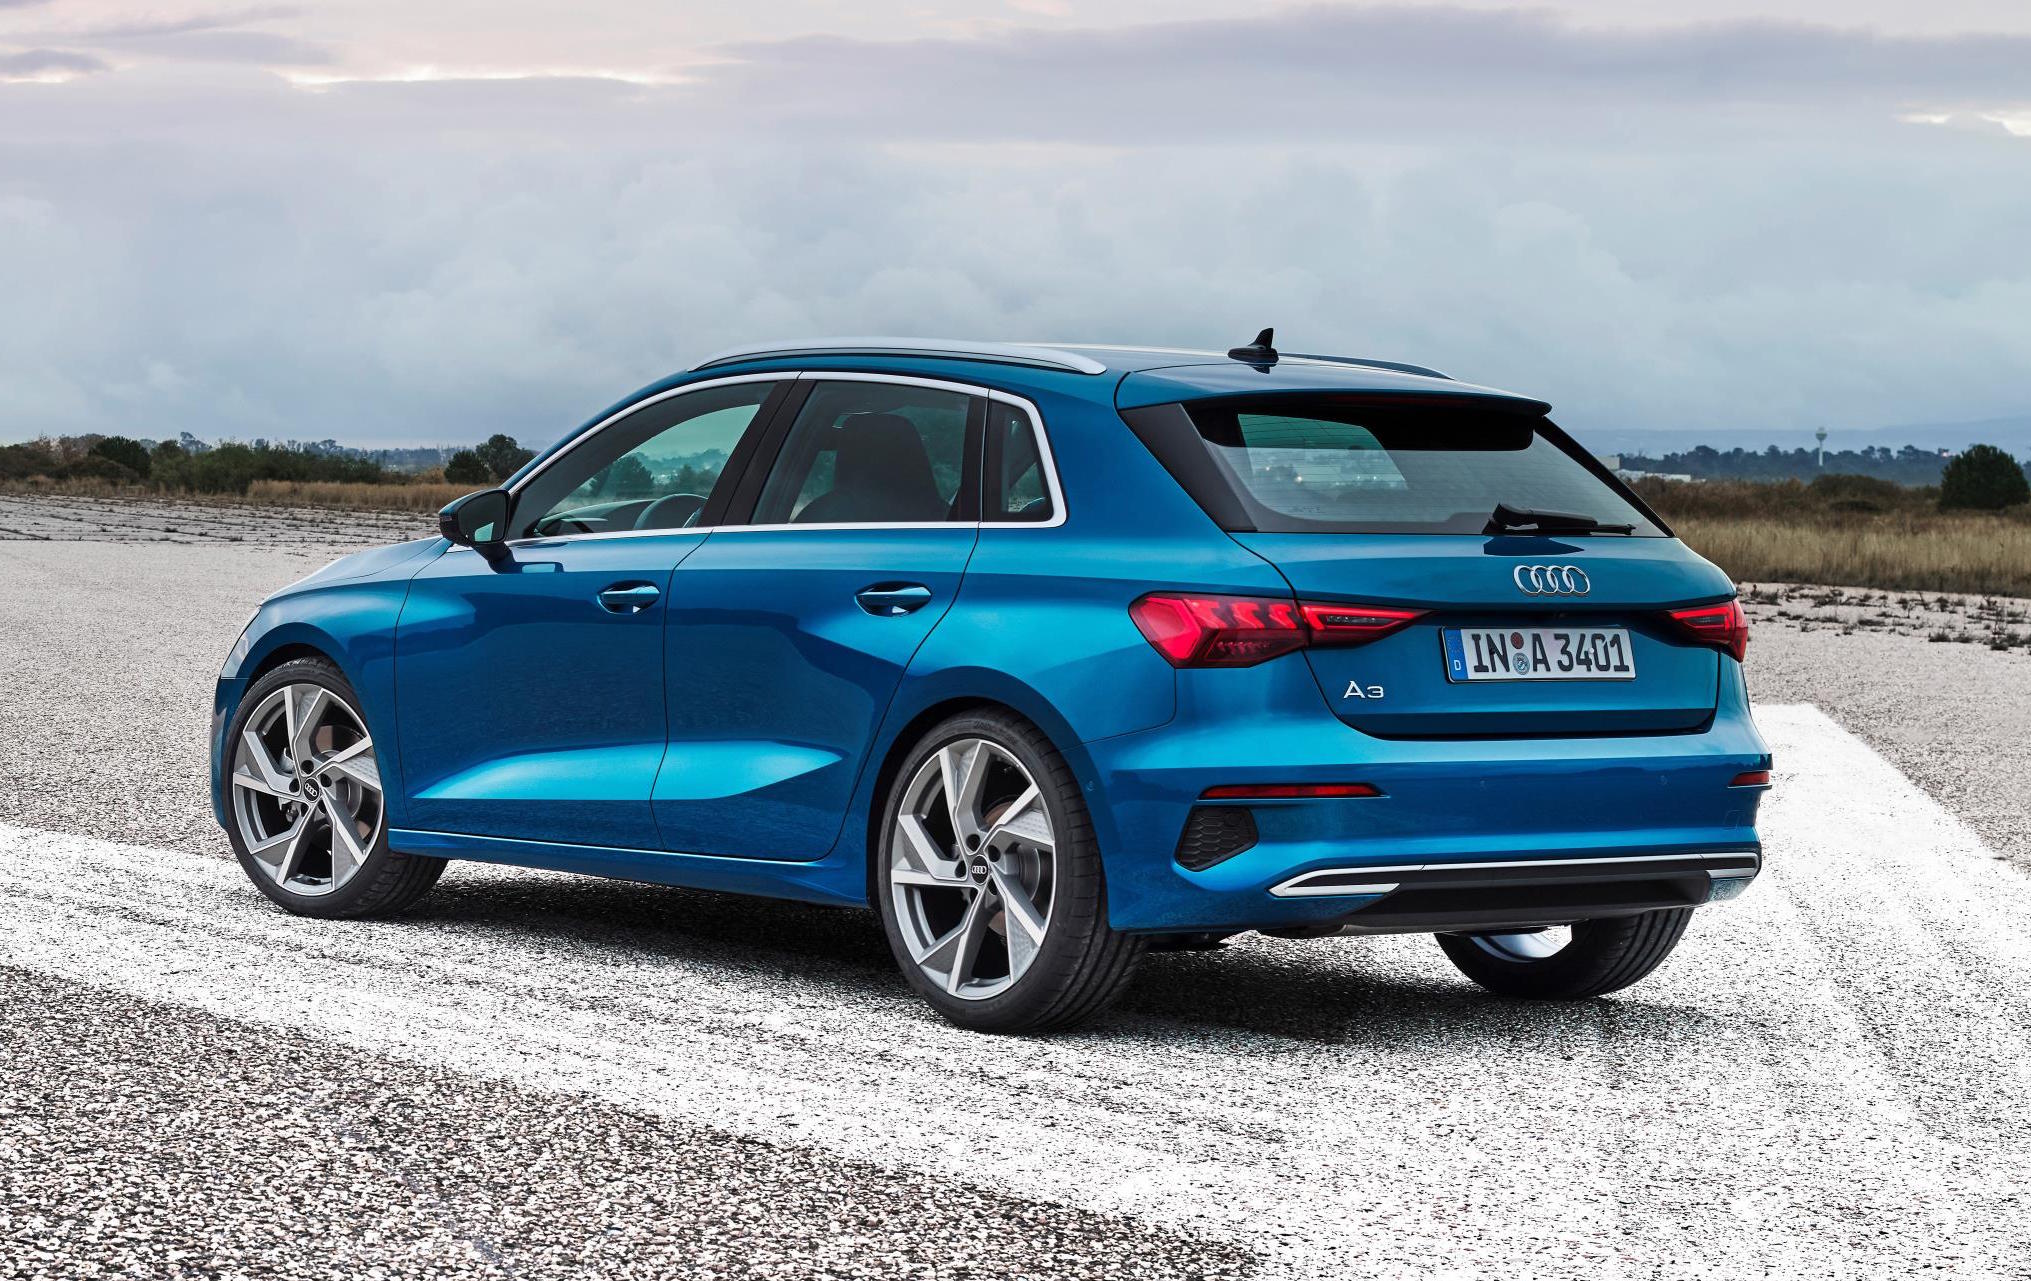 2021 Audi A3 Sportback Revealed With Muscular New Design Performancedrive